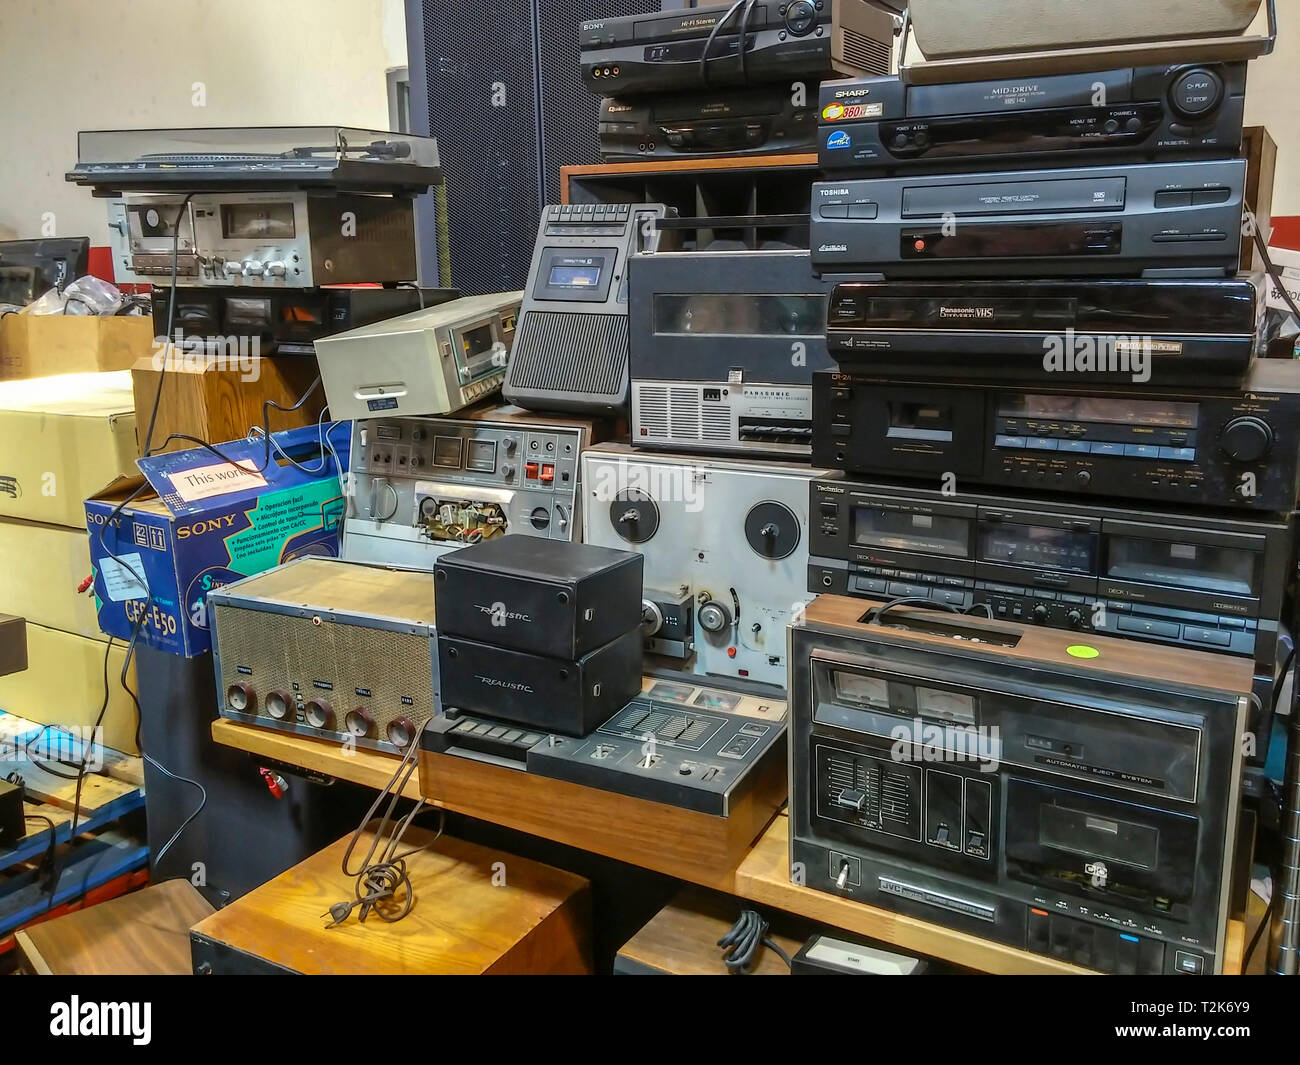 A collection of discarded electronics waiting to be recycled in New York on Saturday, March 30, 2019. (© Richard B. Levine) - Stock Image